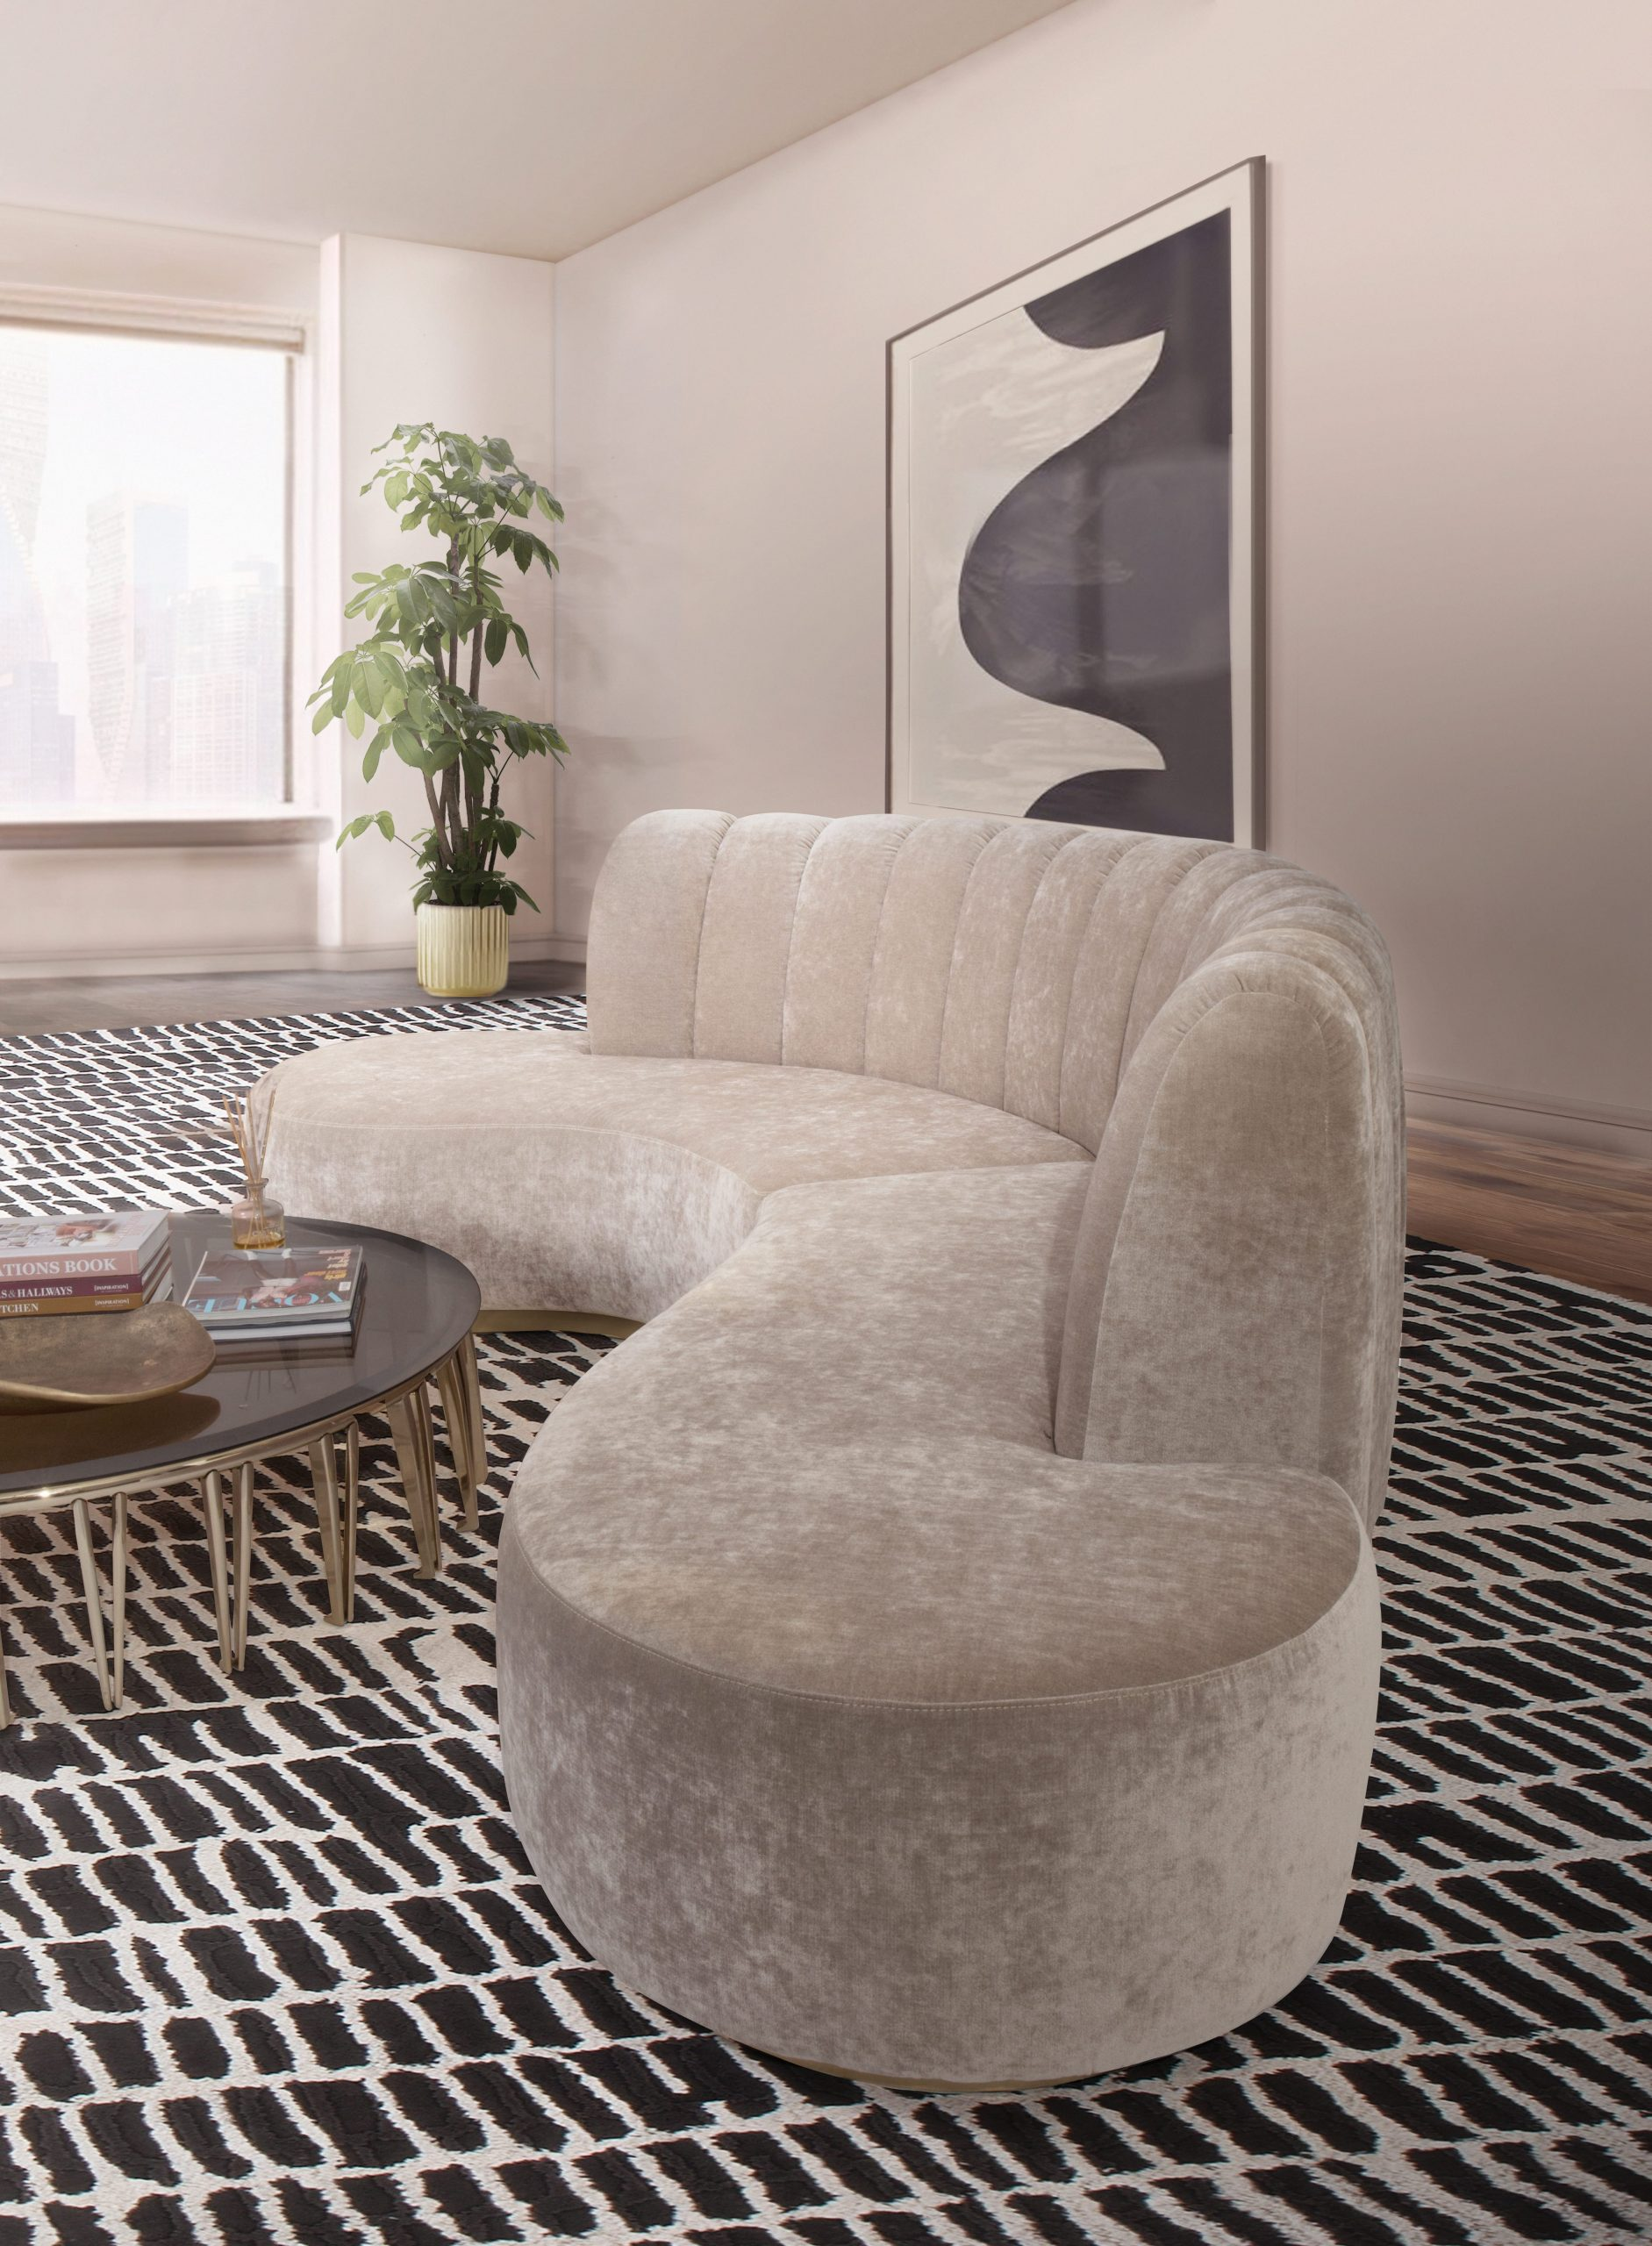 5 Rugs To Create A Minimalist Style